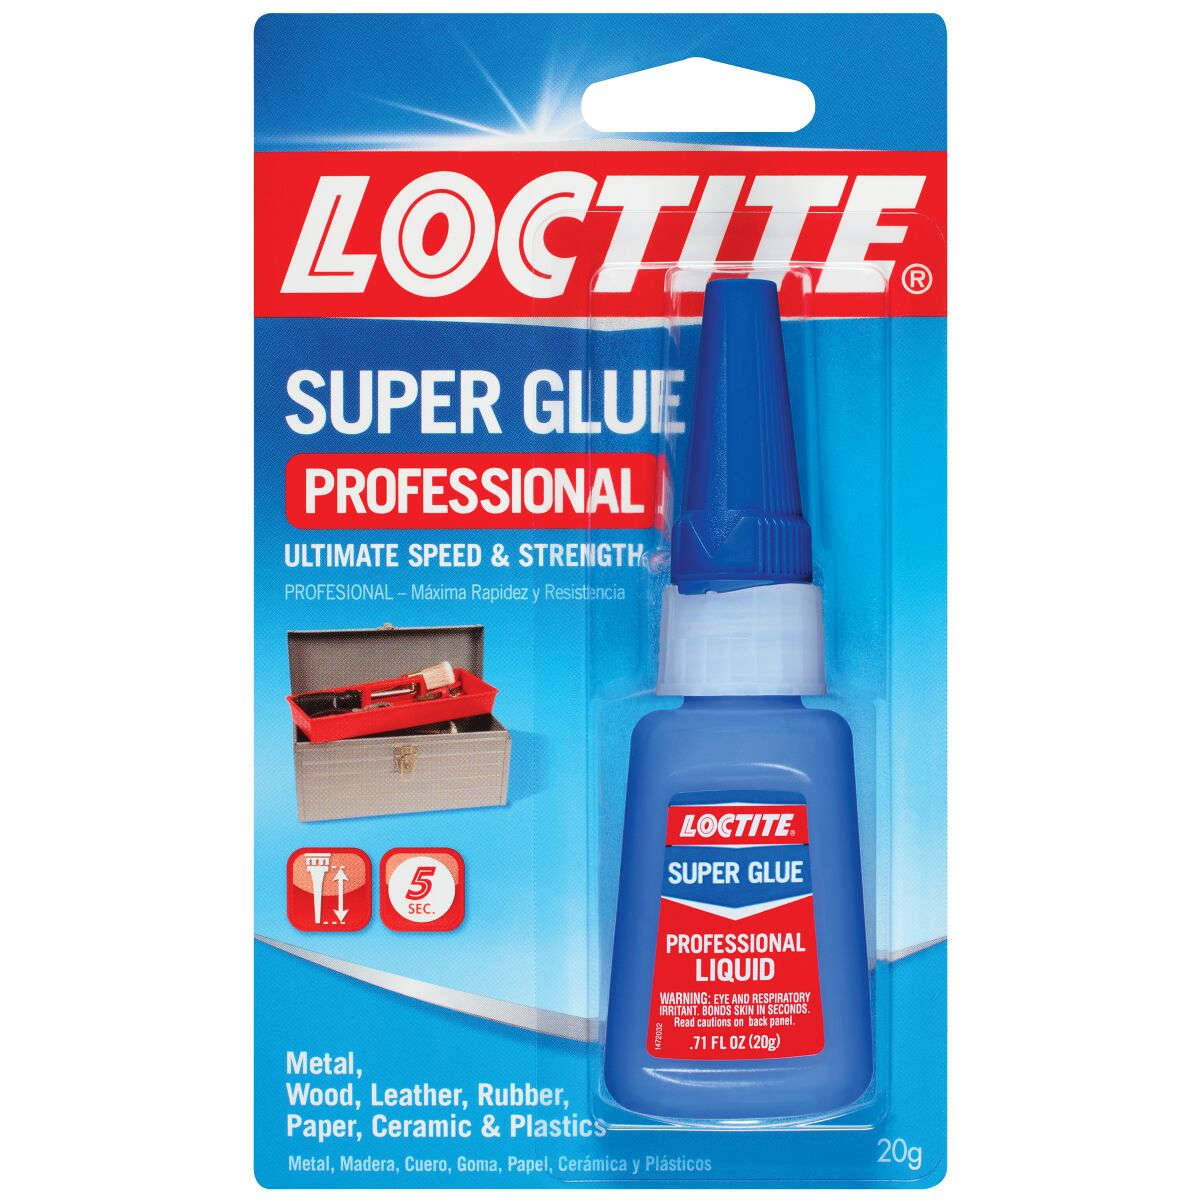 Loctite Super Glue Professional